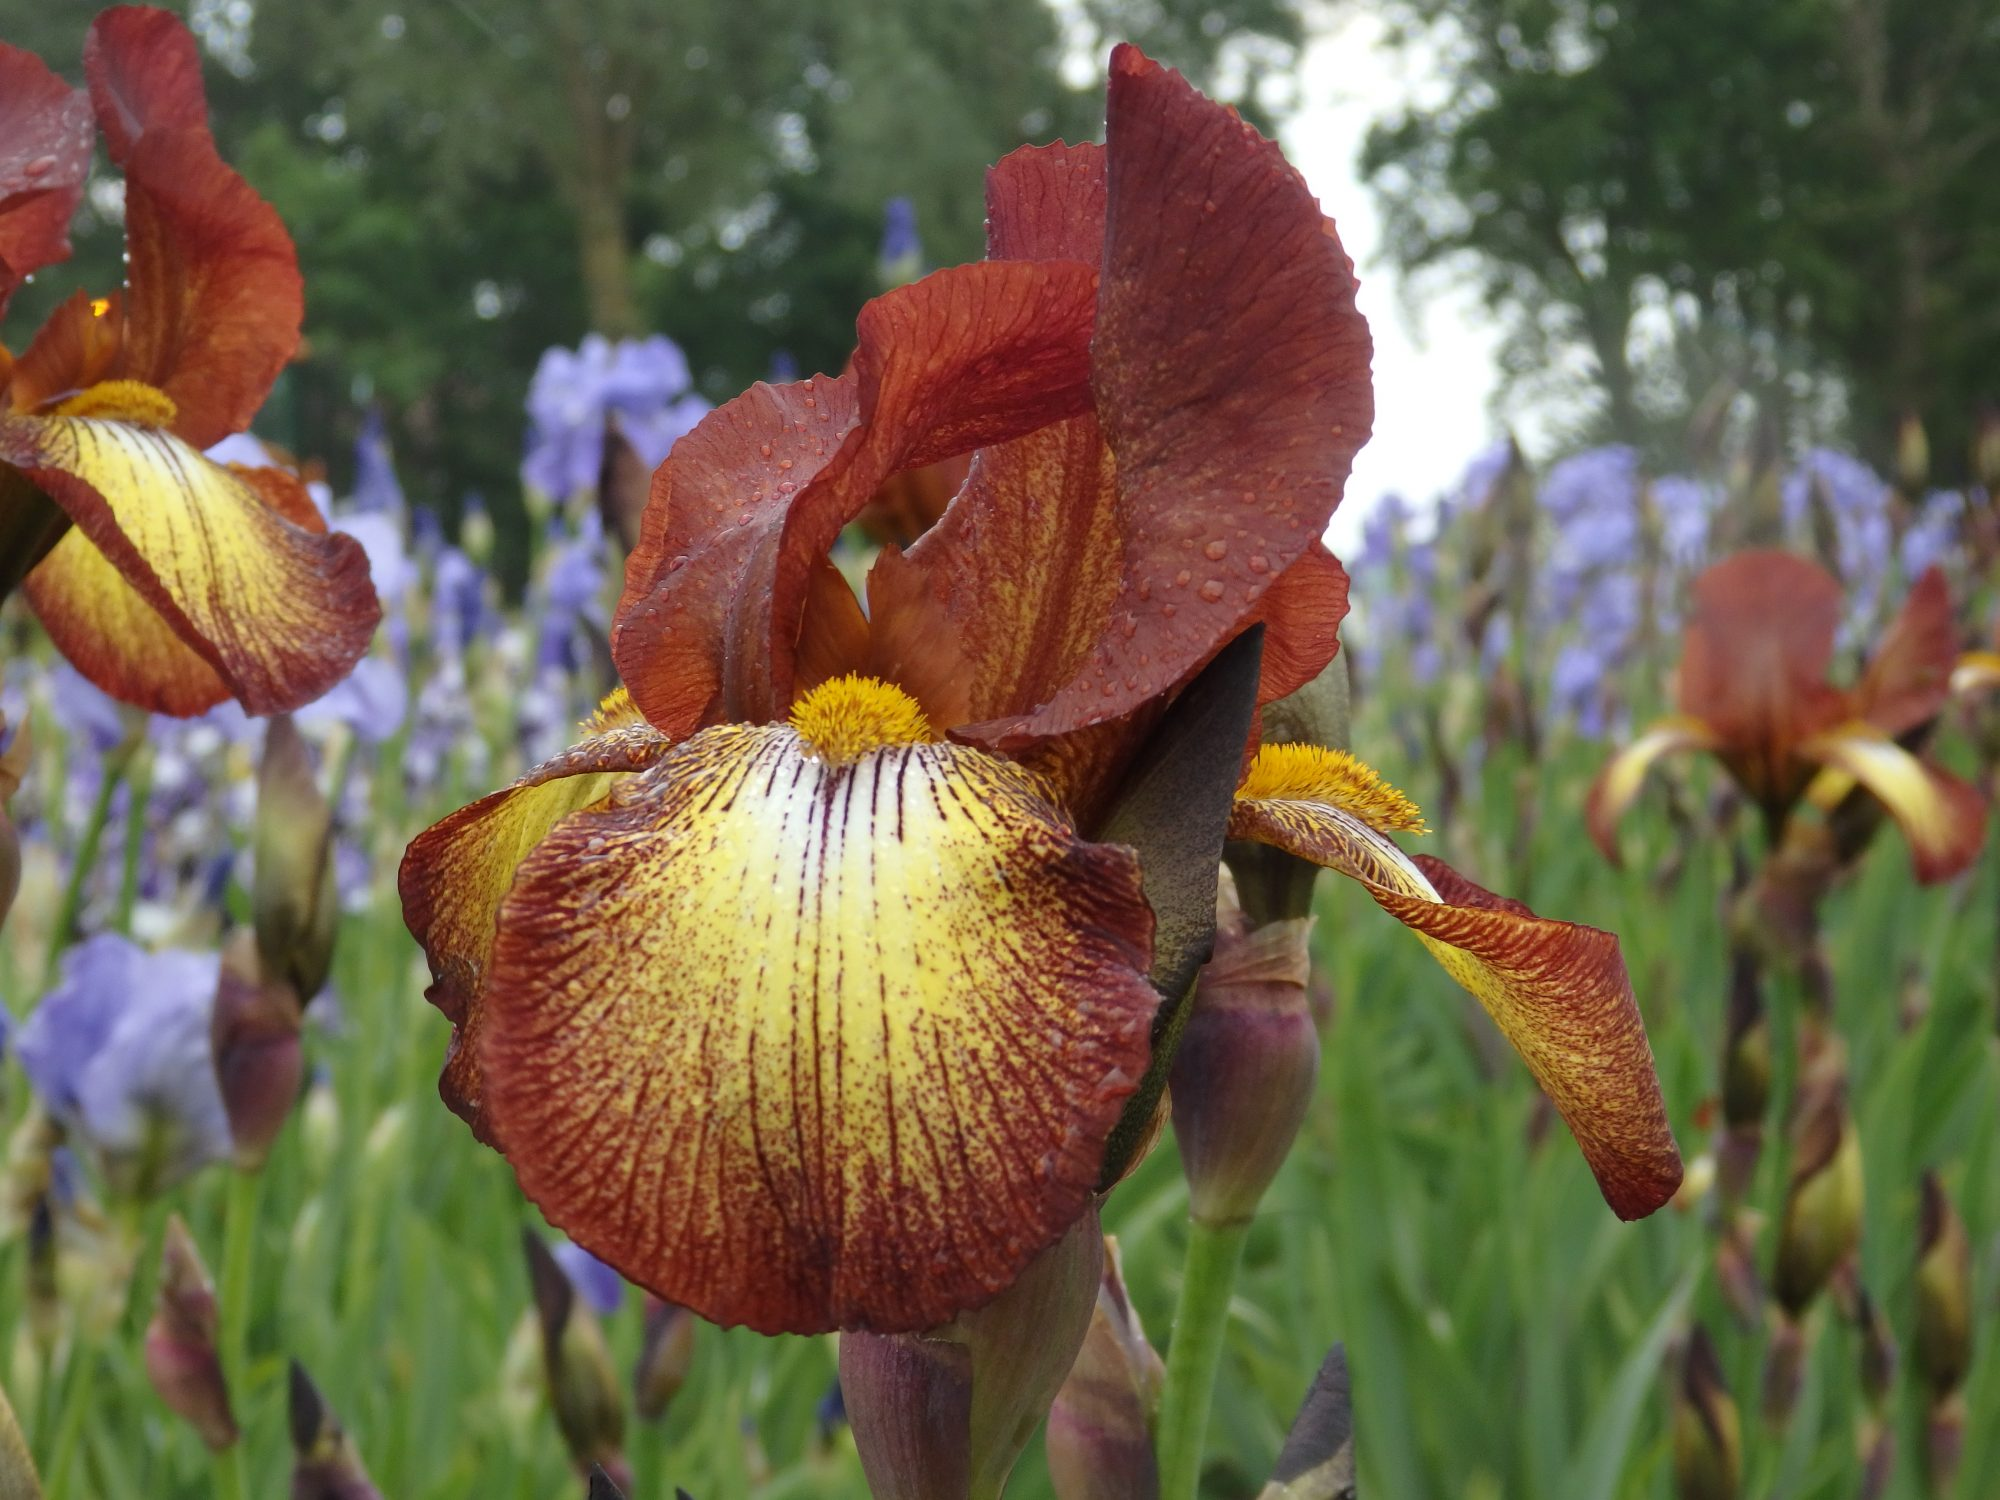 an iris in a field of irises at Kwekerij Joostens, one of the gardens that can be visited